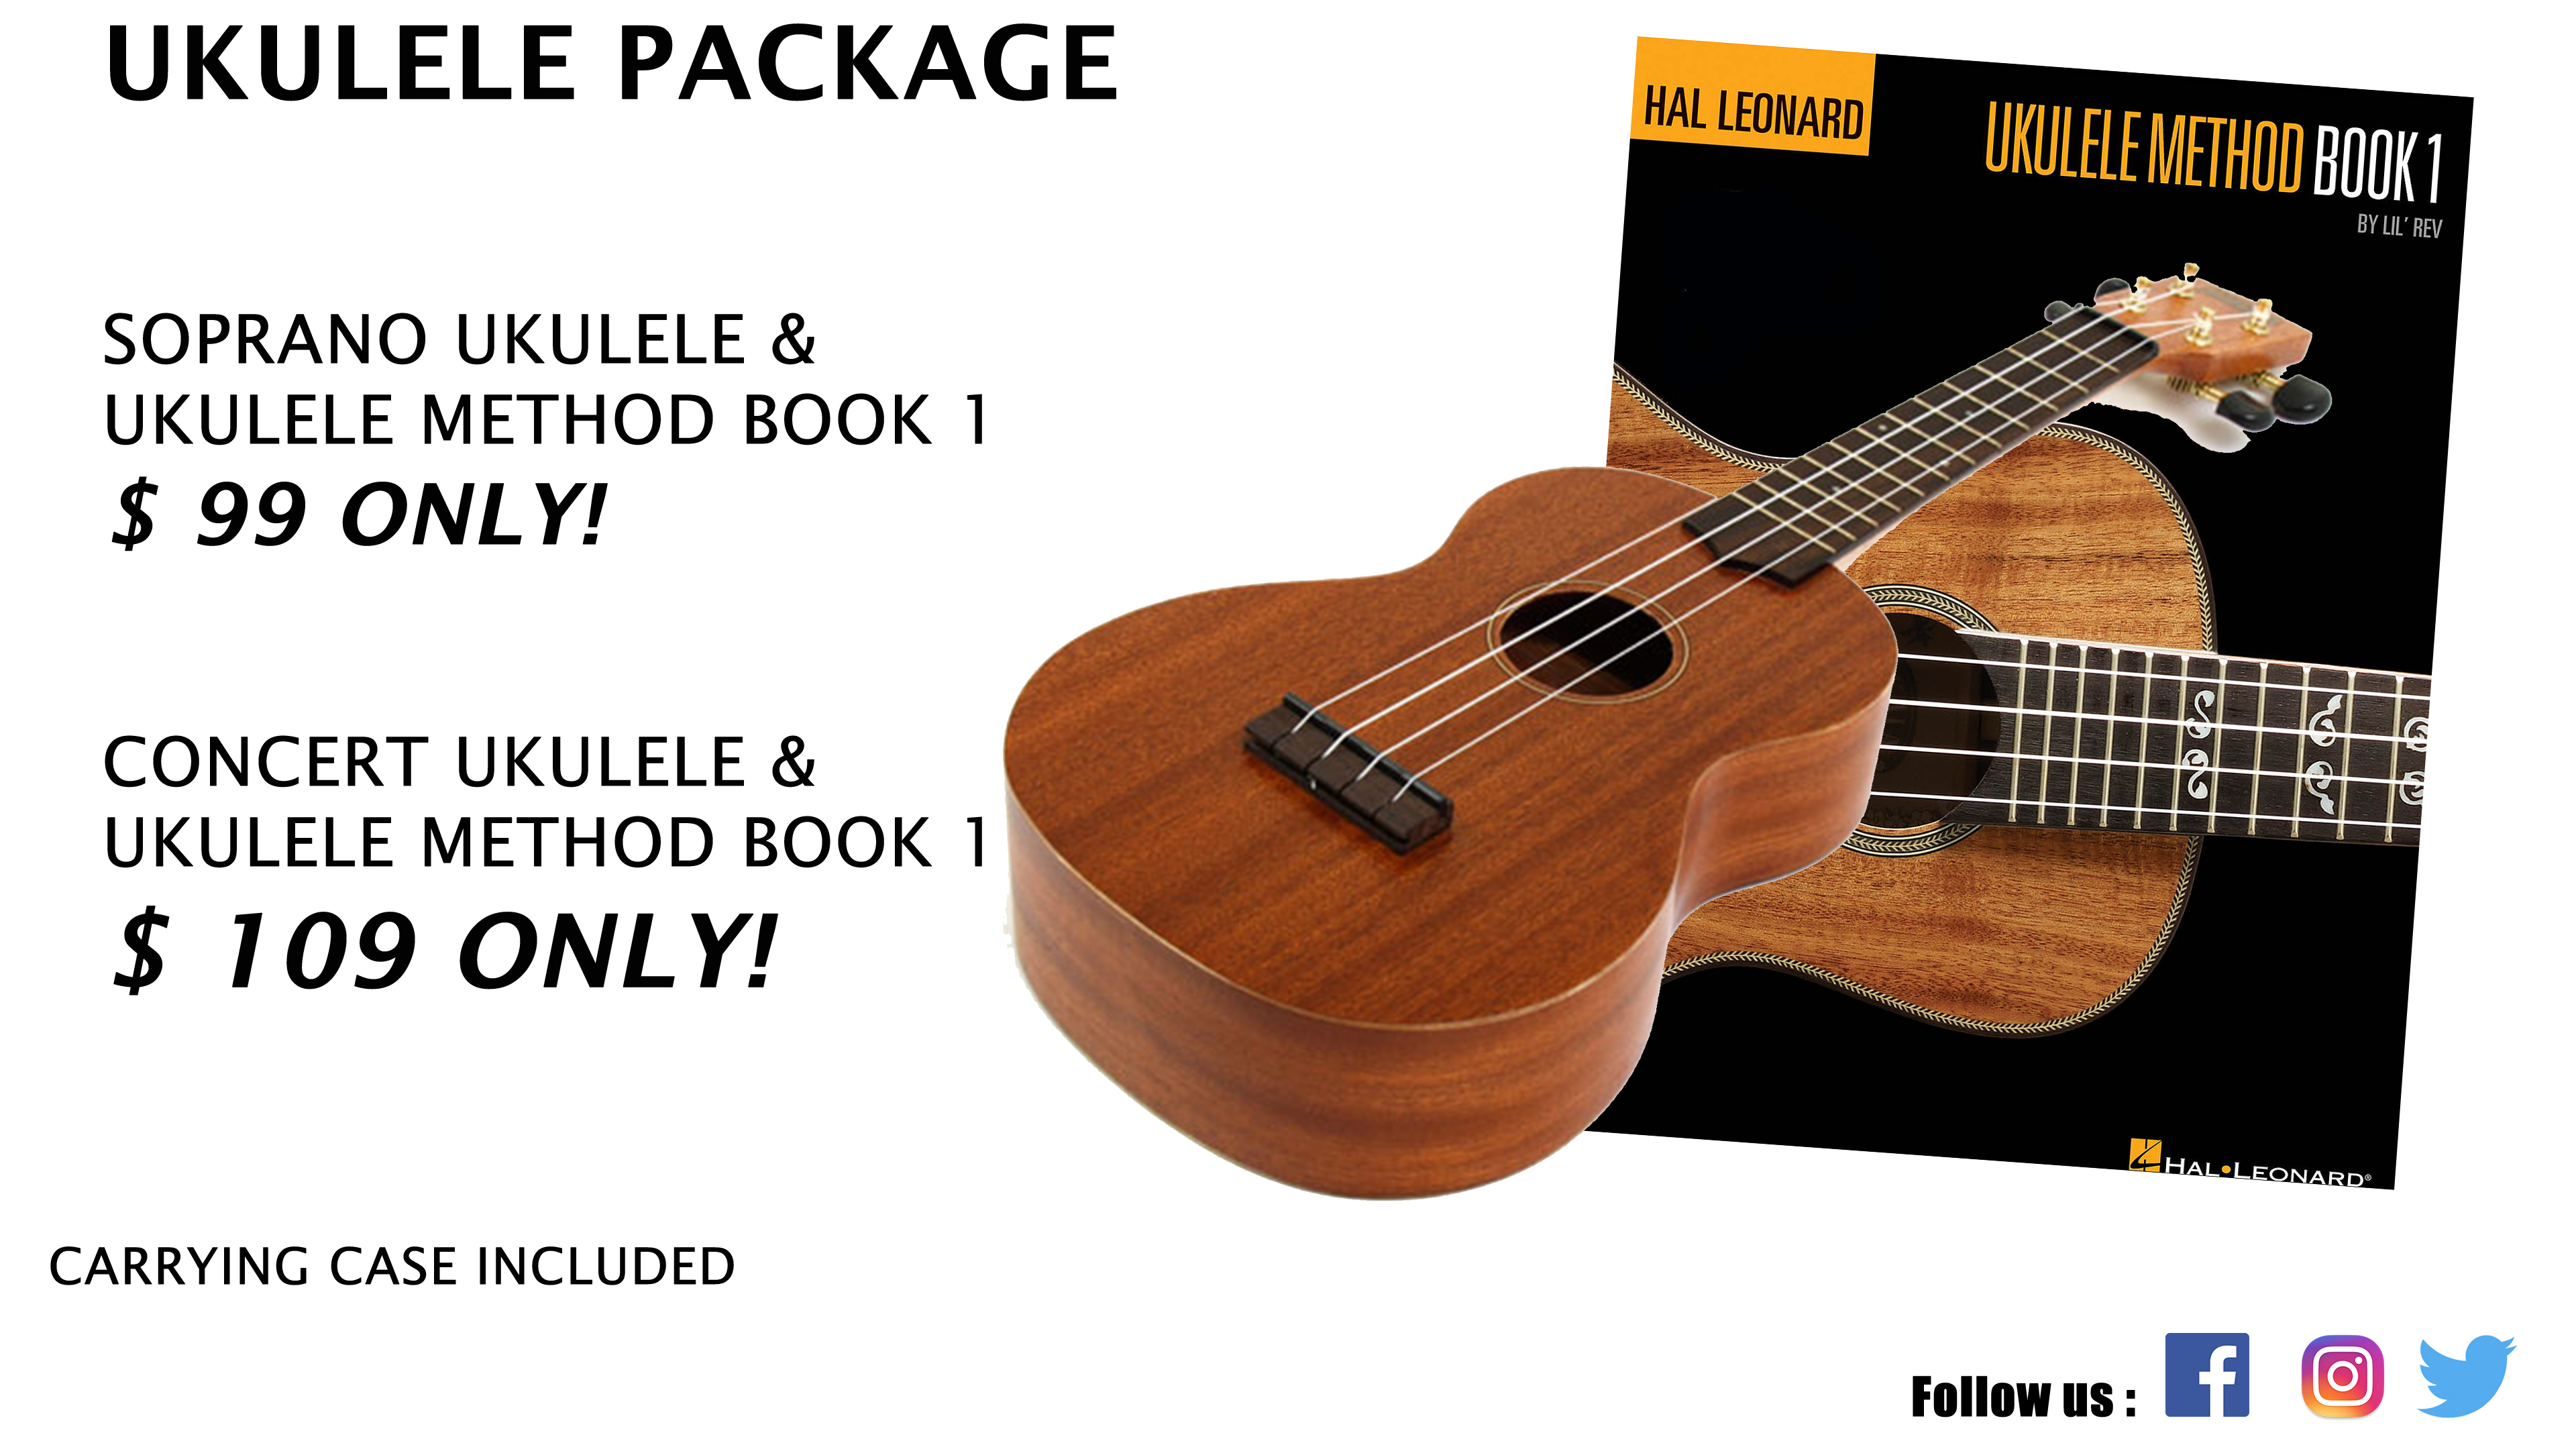 Ukulele Package